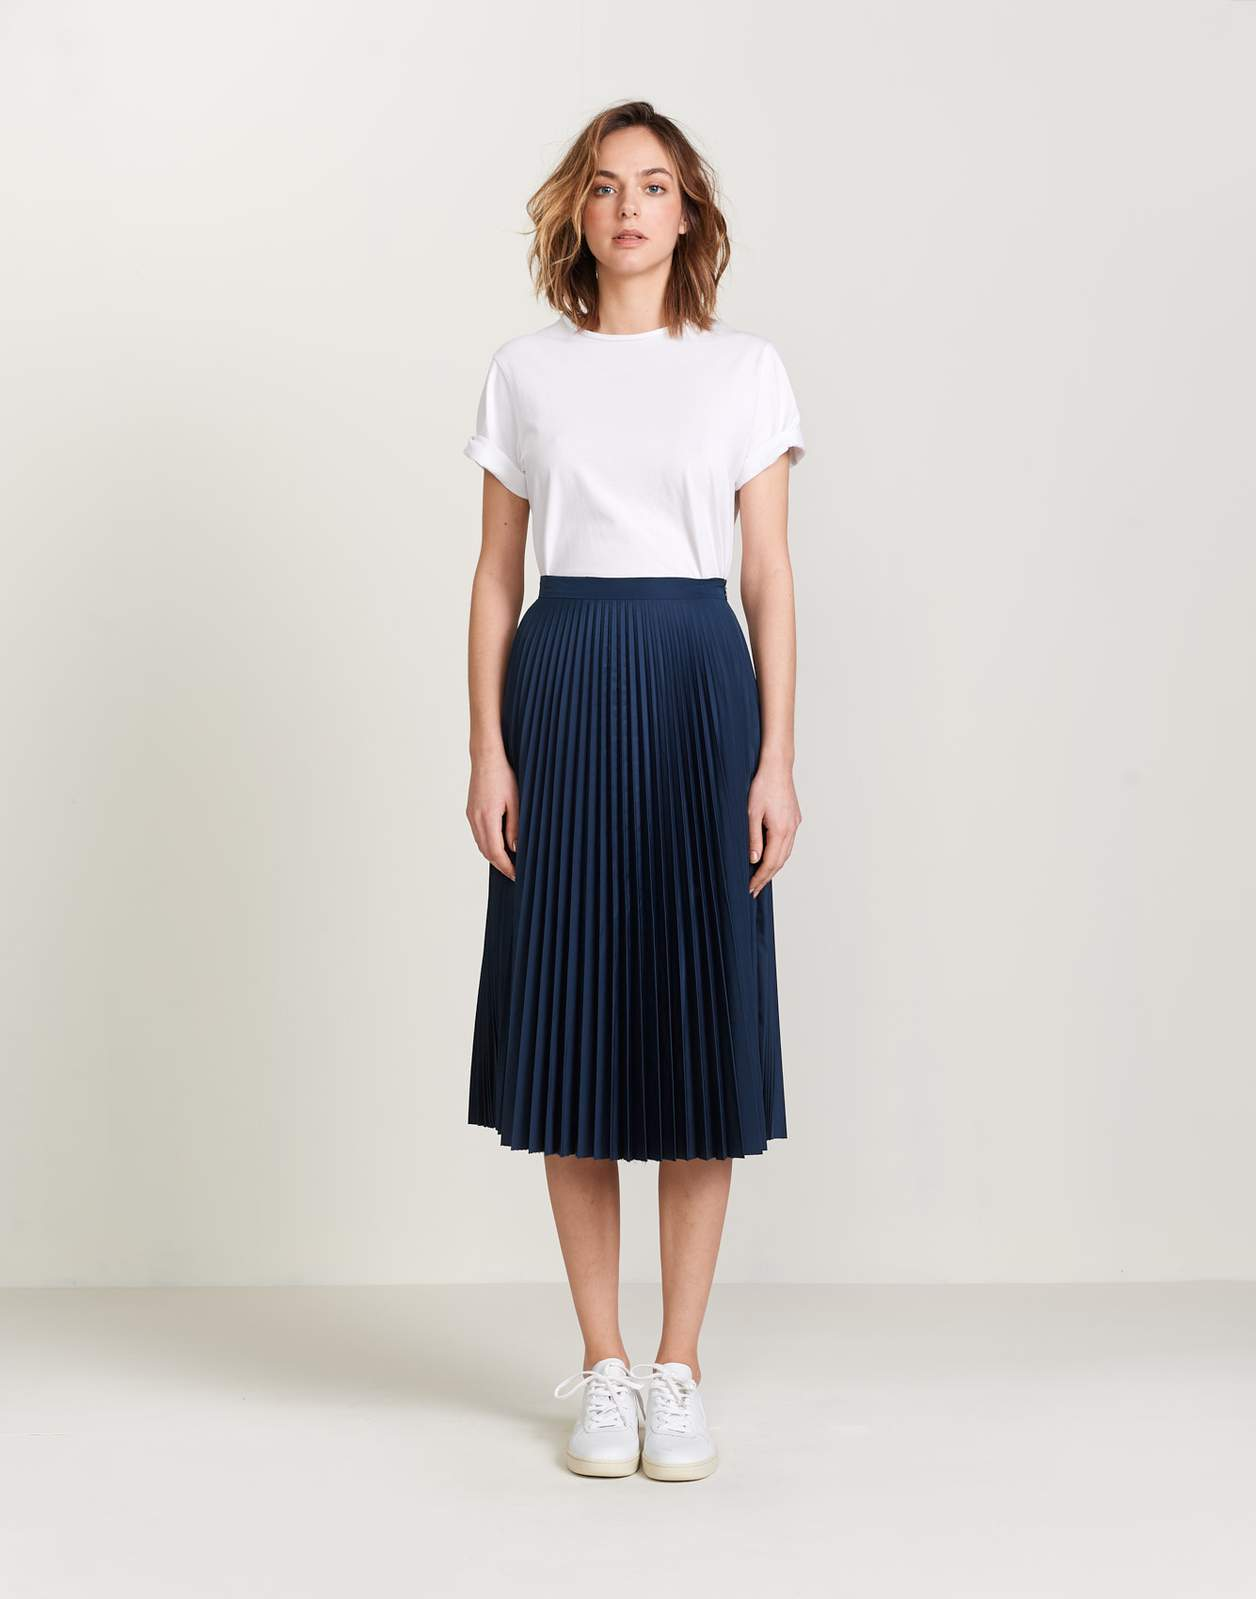 BELLEROSE_SKIRTS_SISTER_P1161_WORKER_24_1600x1600.jpg